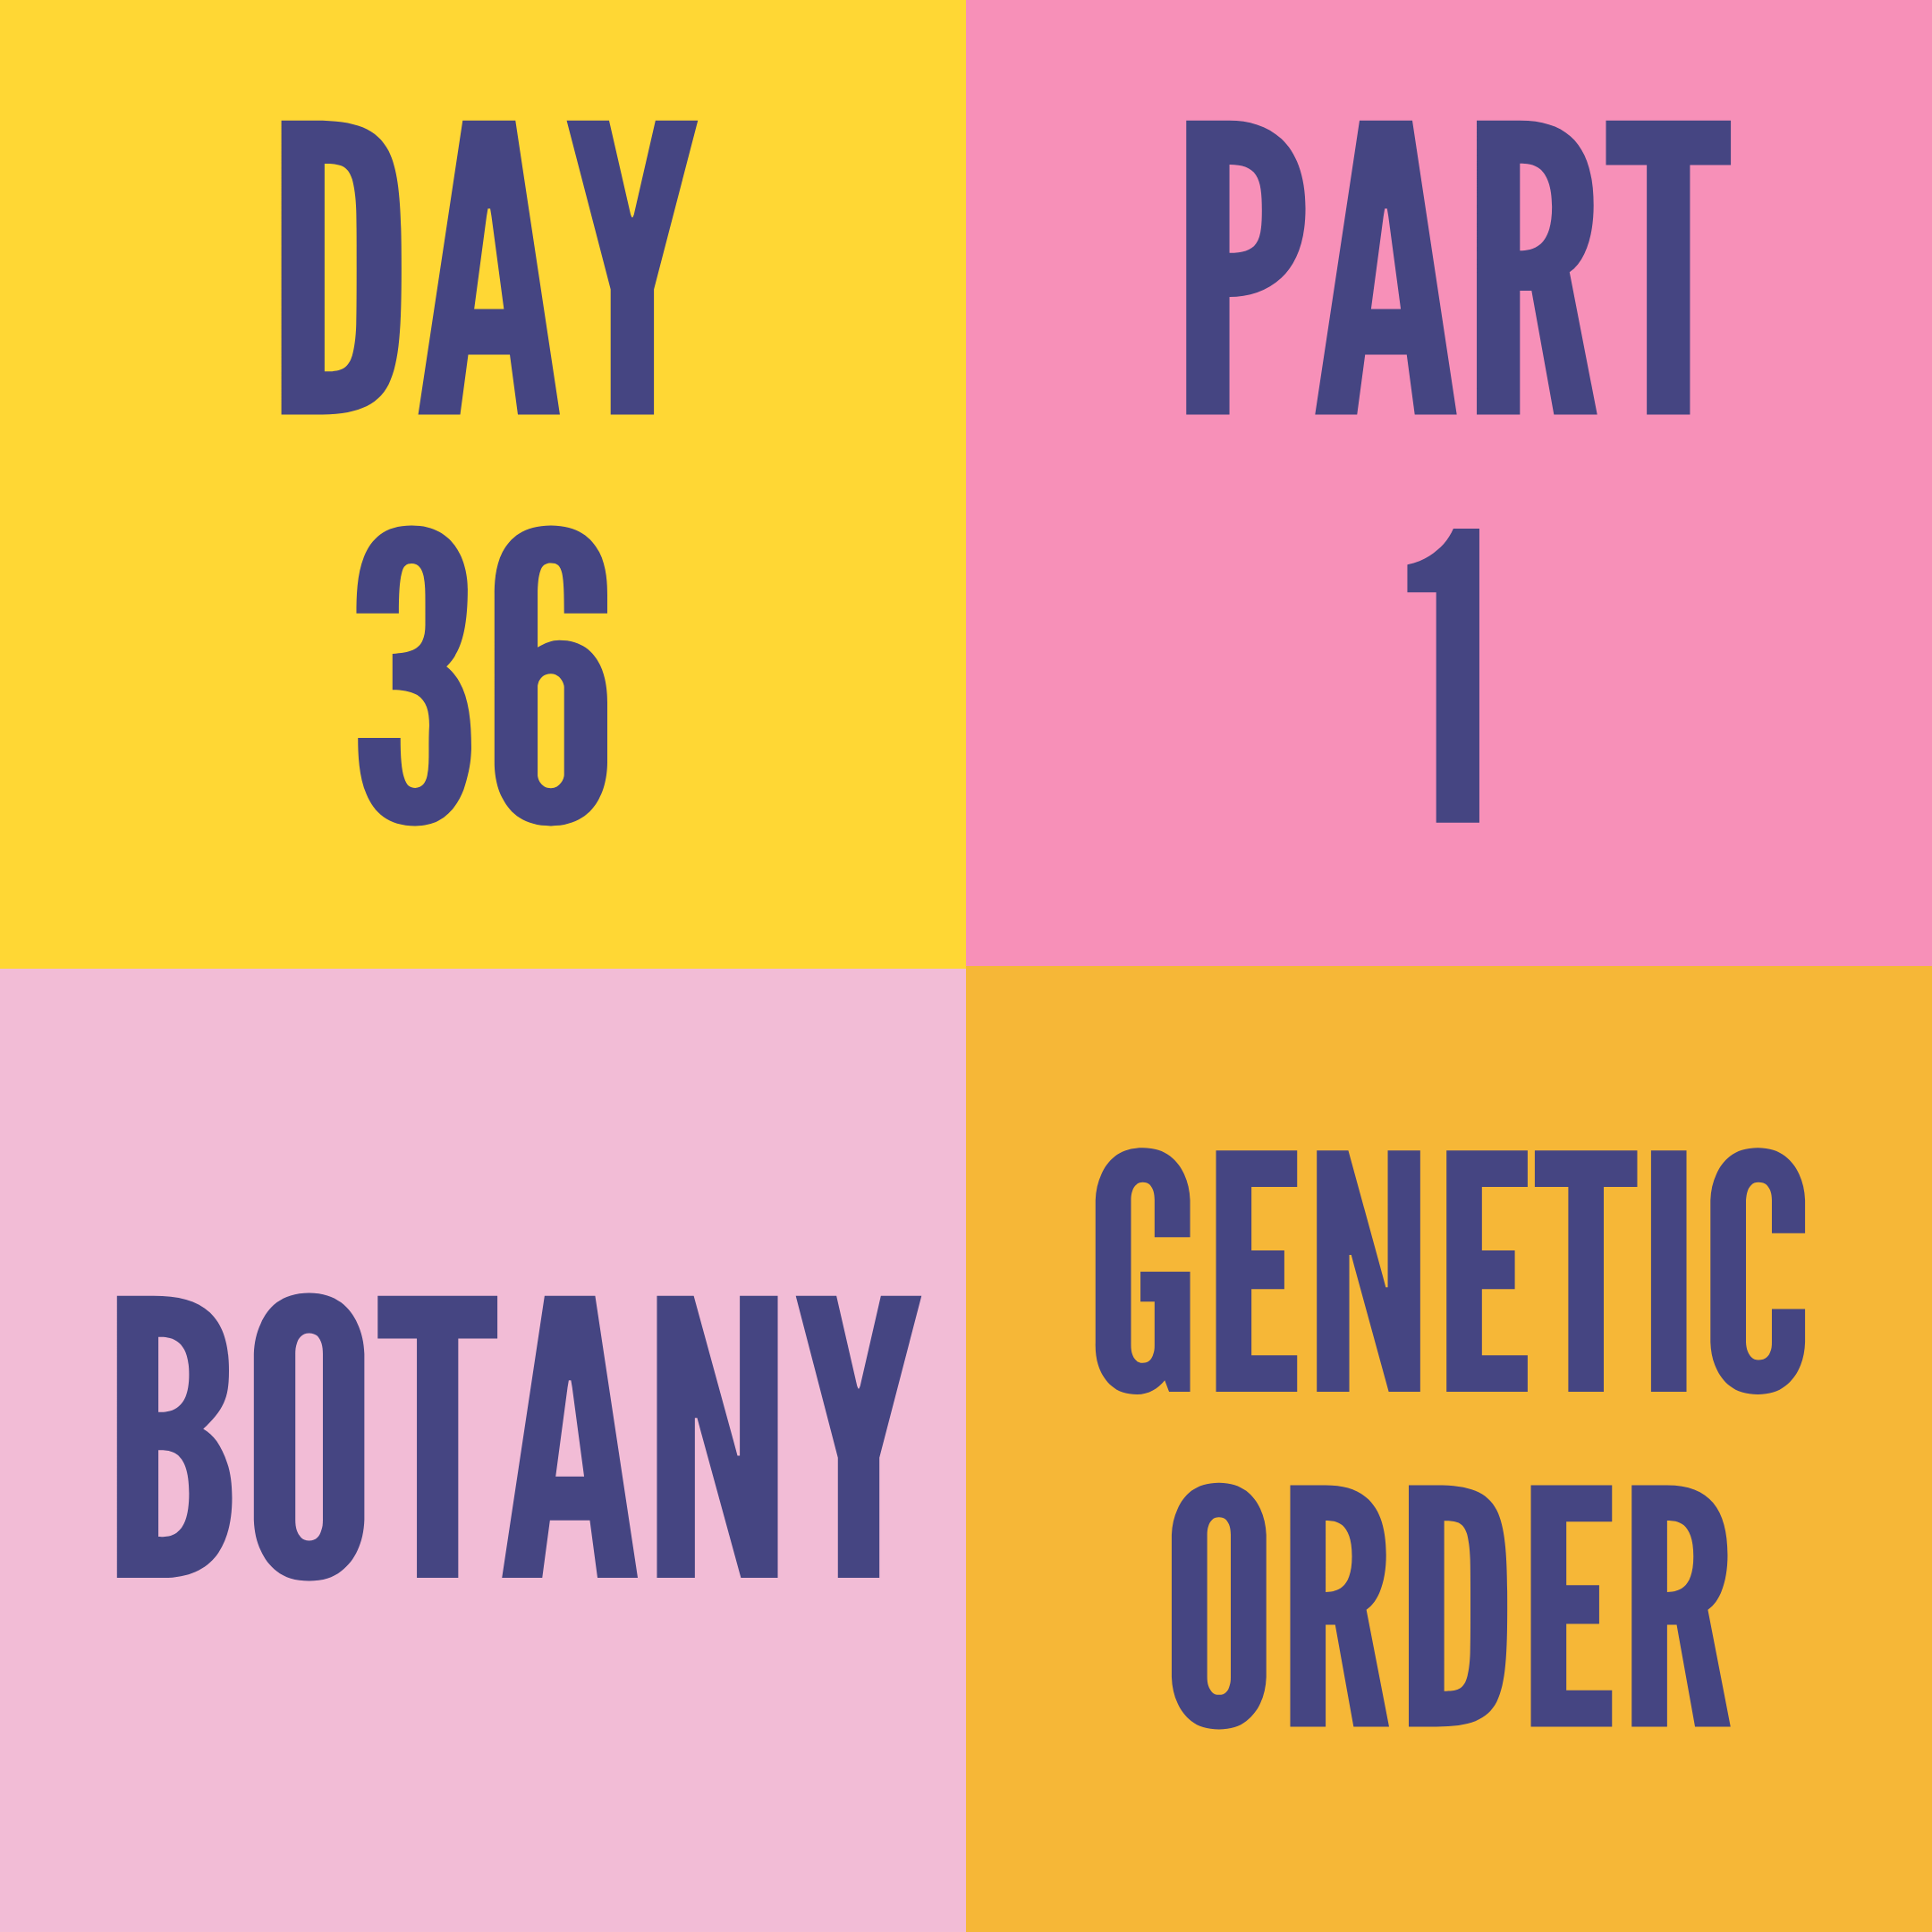 DAY-36 PART-1 GENETIC ORDER